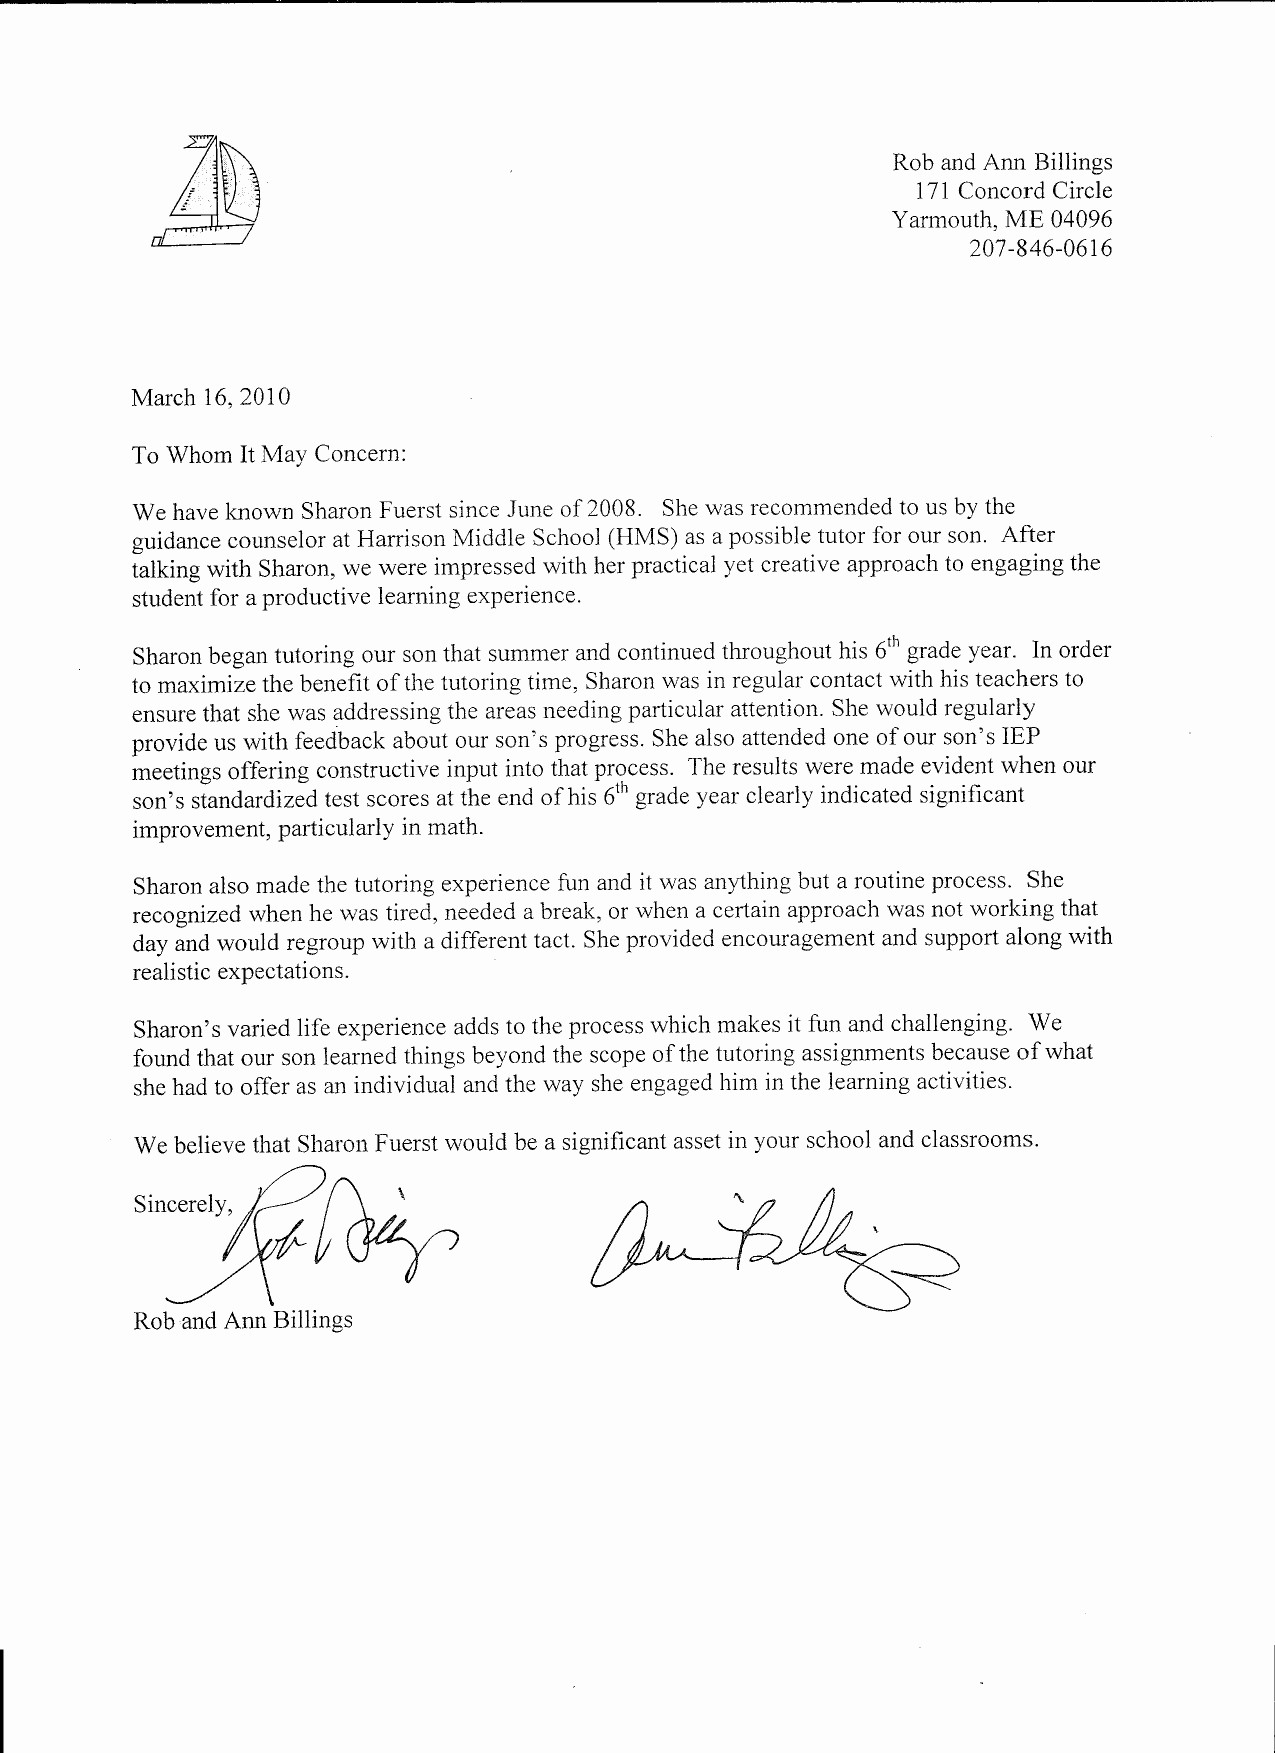 Letters Of Recommendation format Samples Luxury Letter Of Re Mendation format